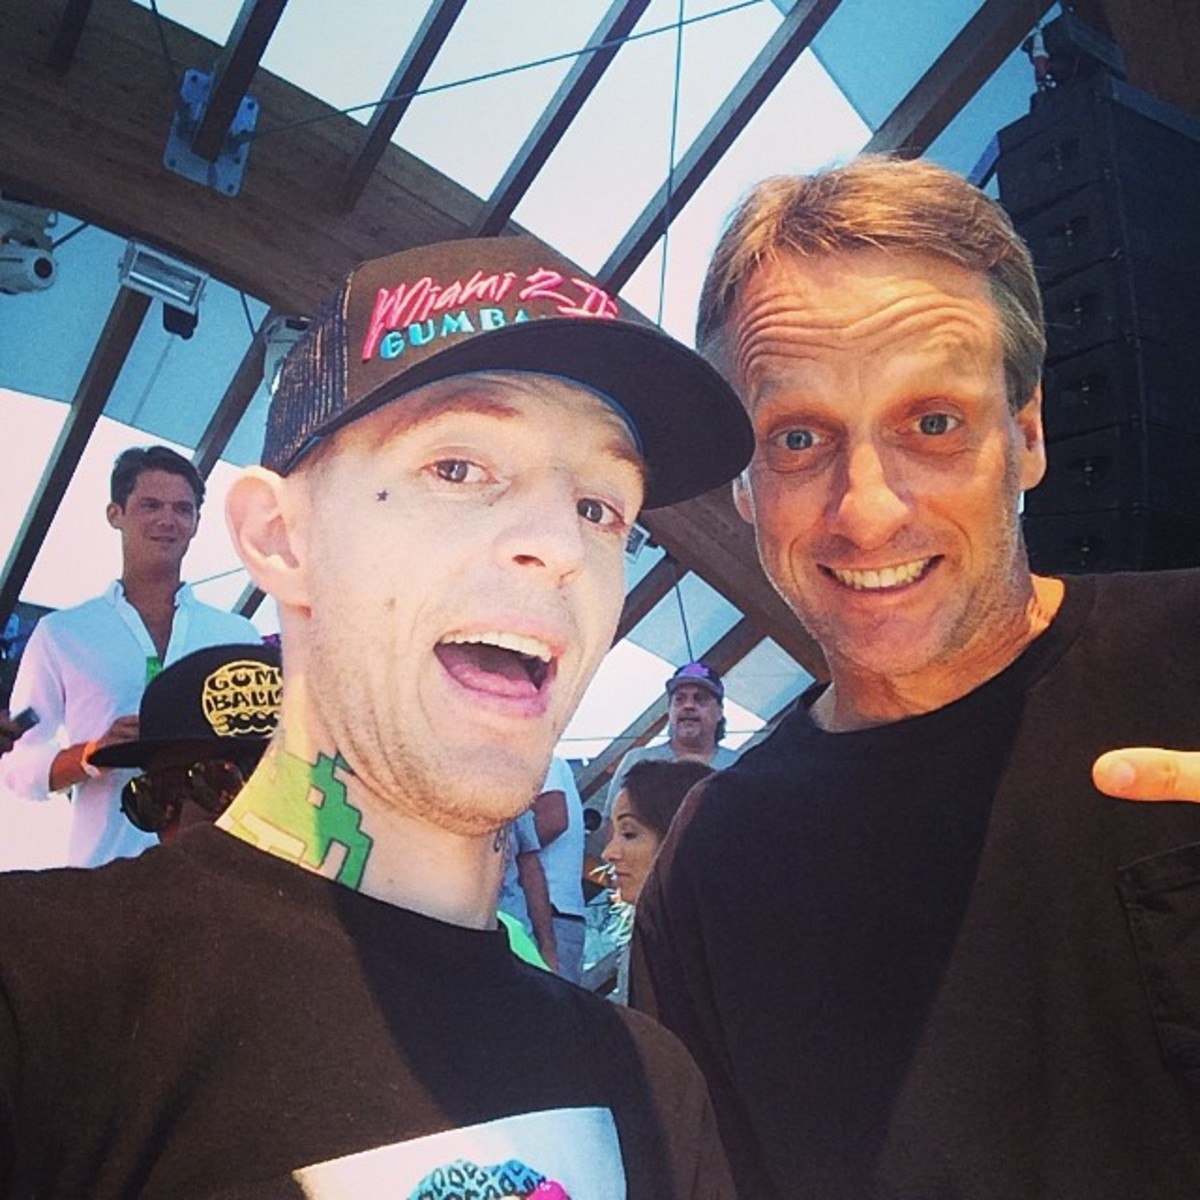 Deadmau5 with Skateboarding legend Tony Hawk